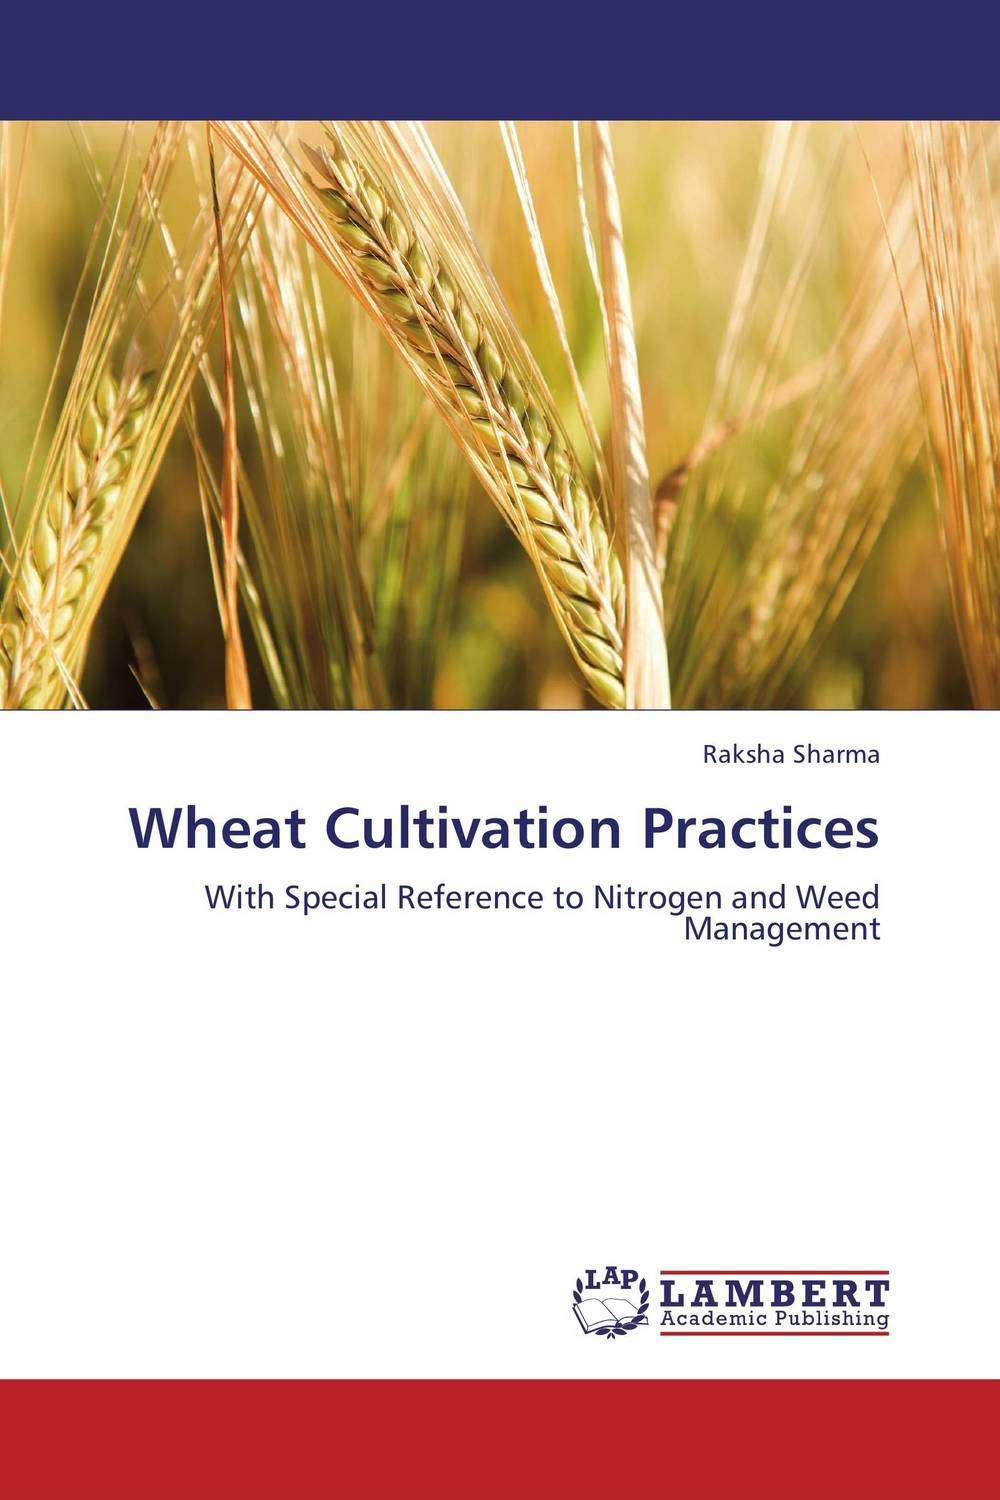 Wheat Cultivation Practices found in brooklyn